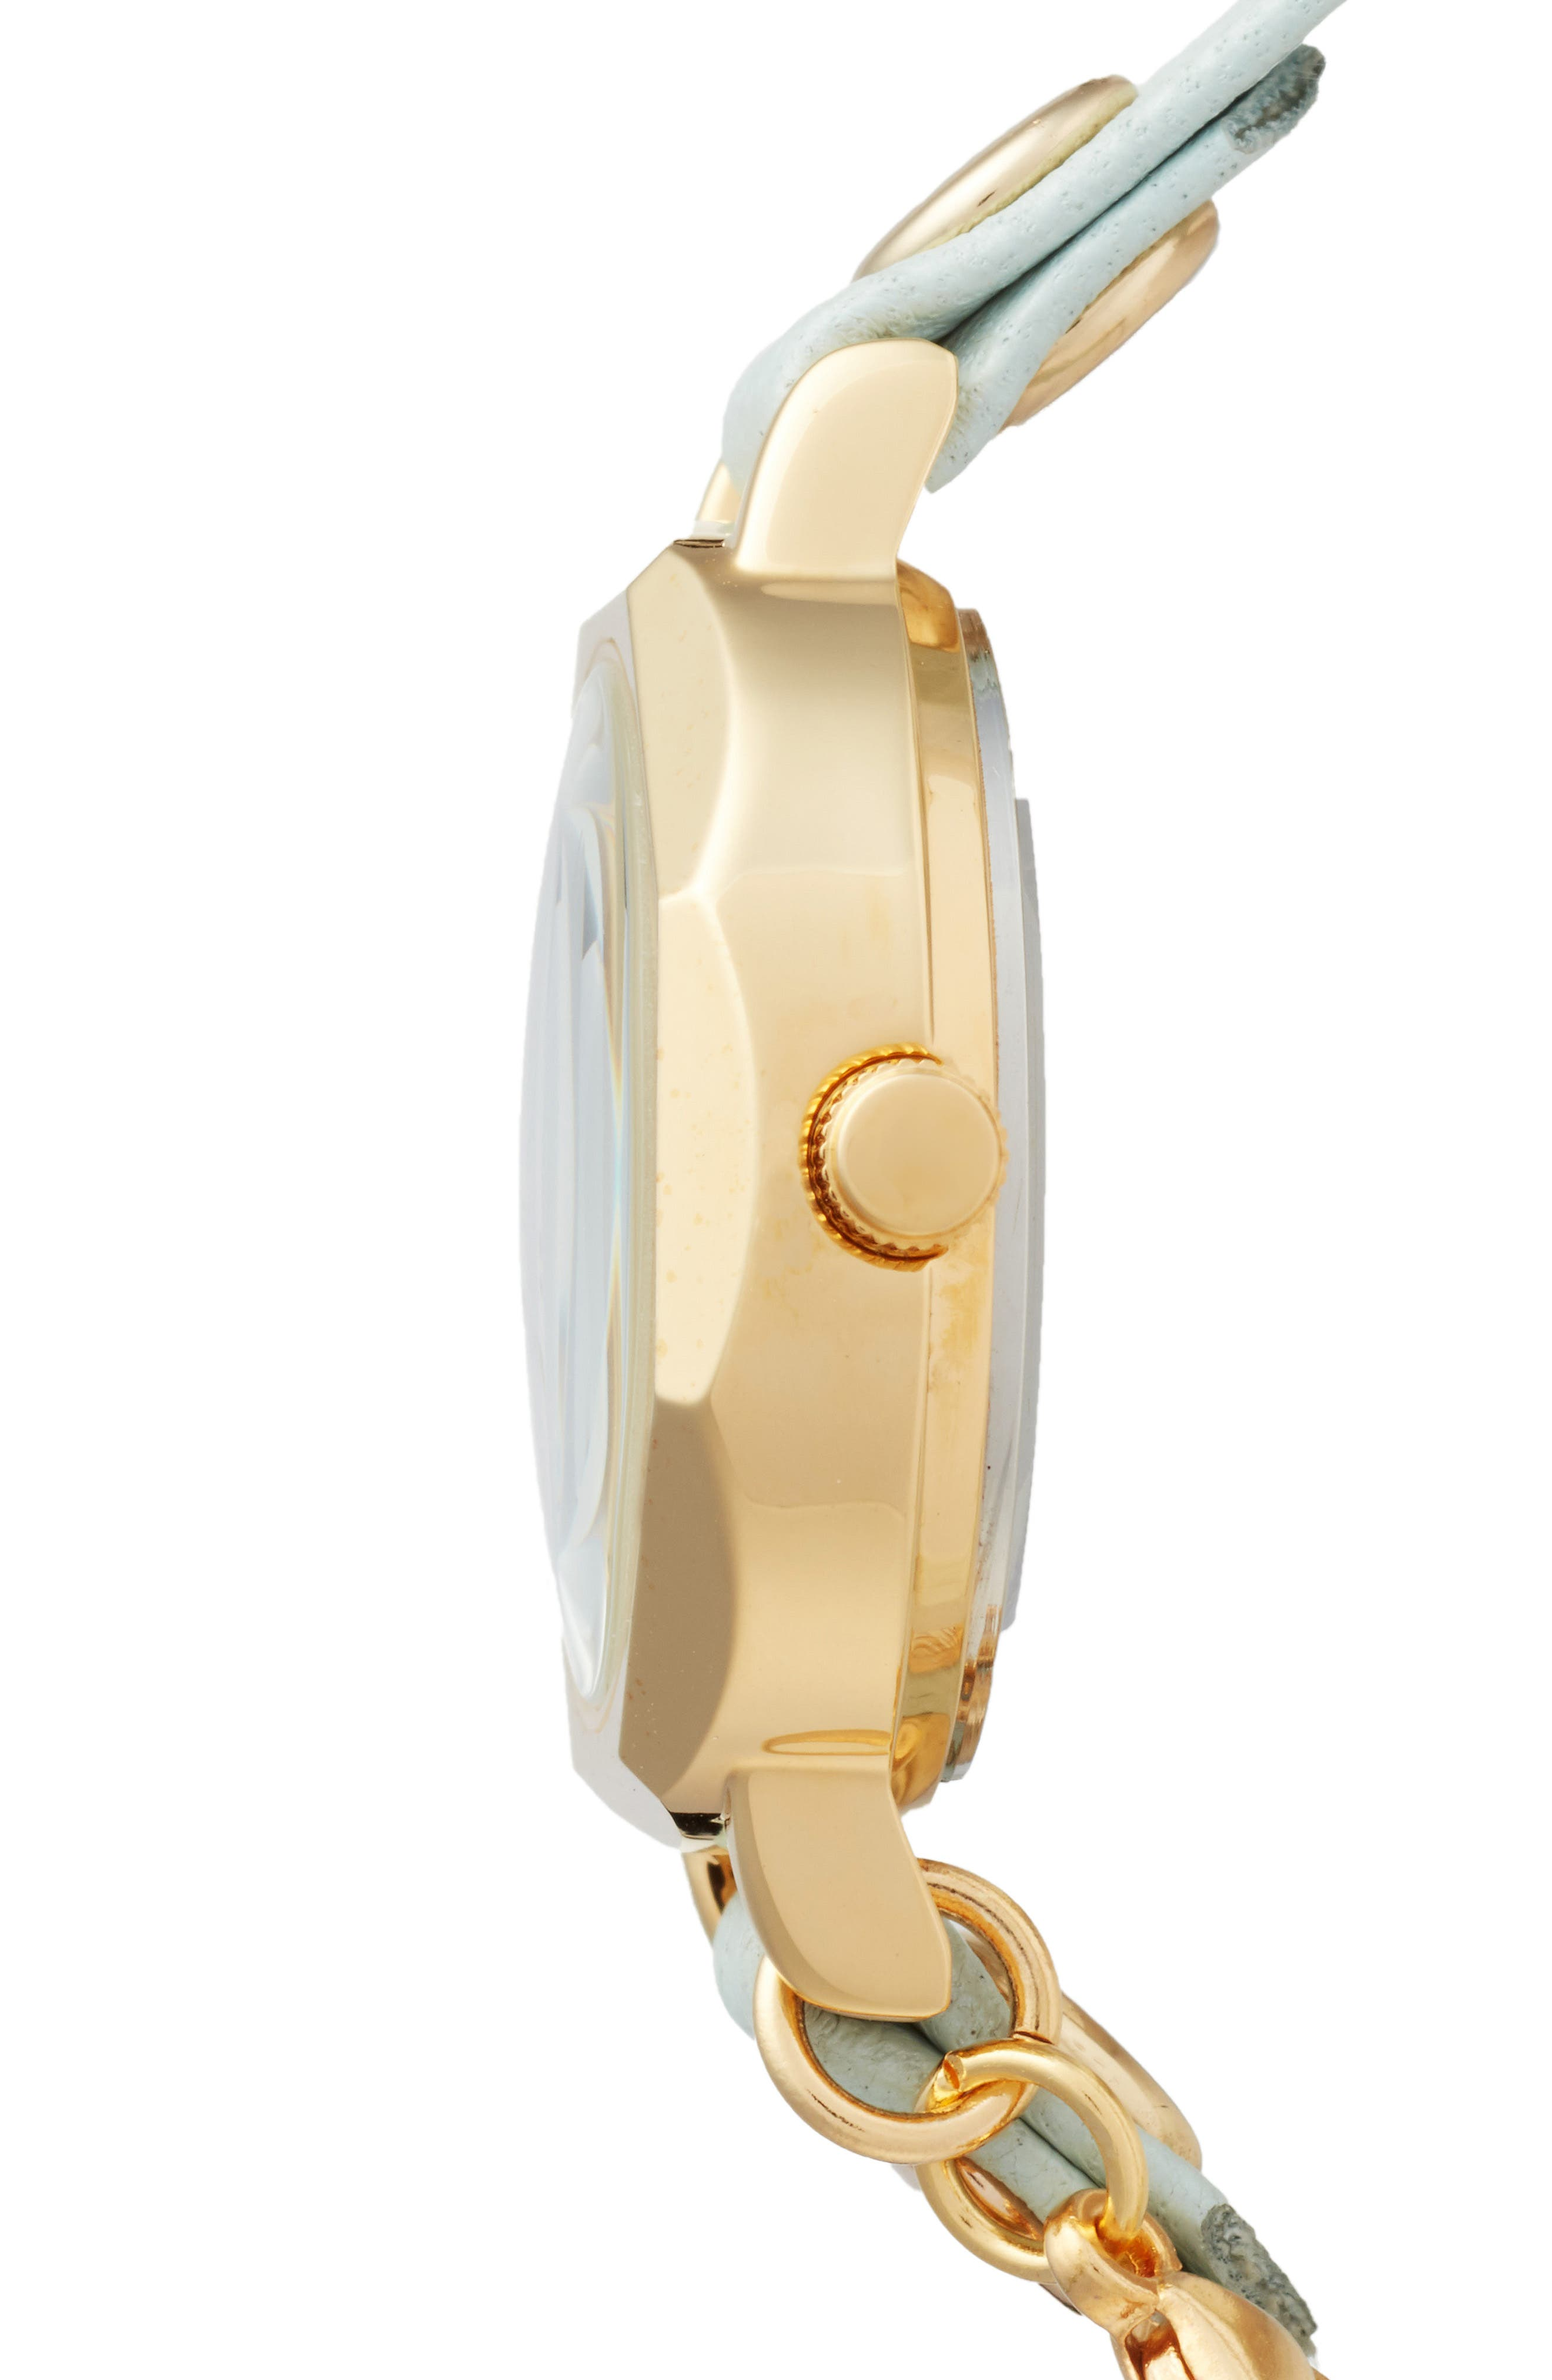 Perth Wrap Leather Strap Watch, 22mm,                             Alternate thumbnail 3, color,                             MINT/WHITE/GOLD